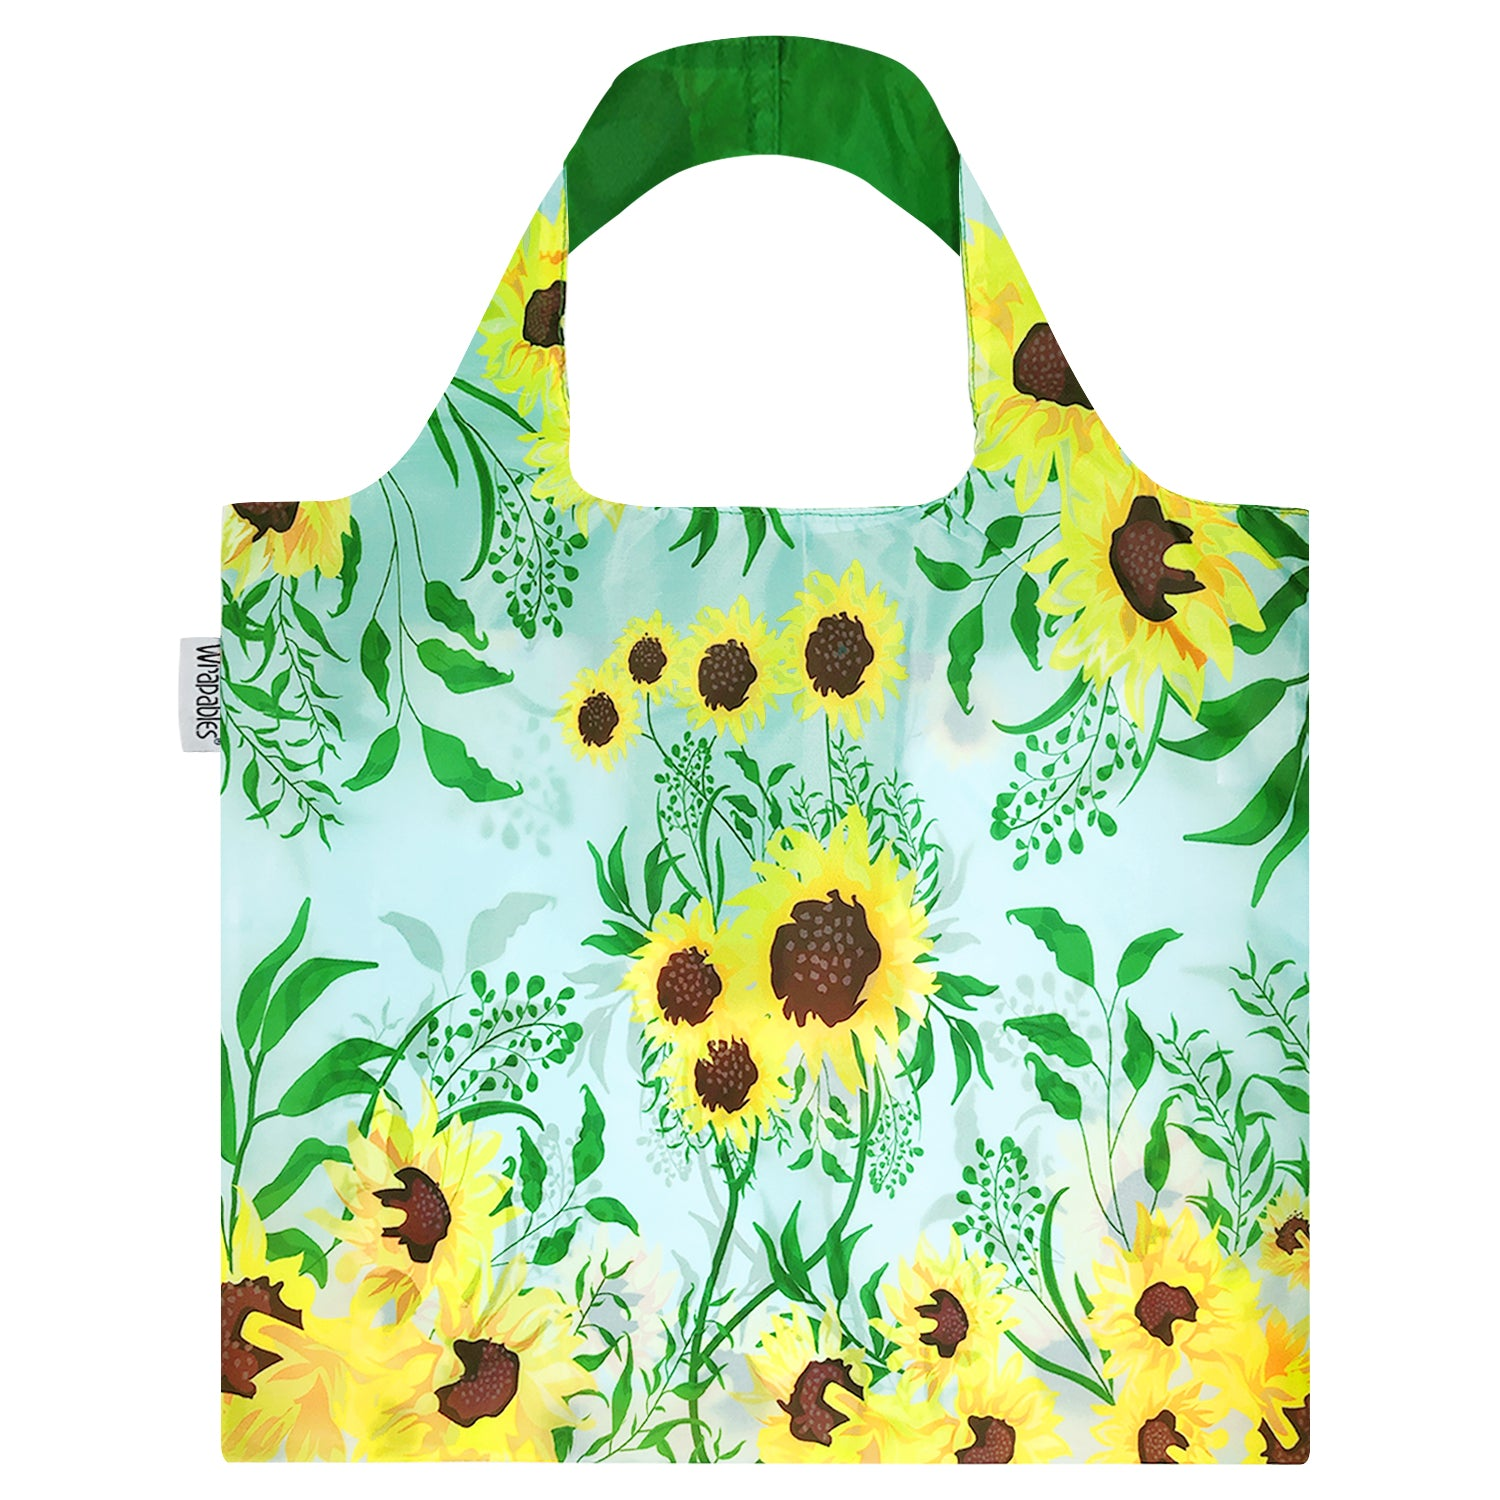 Wrapables Large Reusable Shopping Tote Bag with Outer Pouch